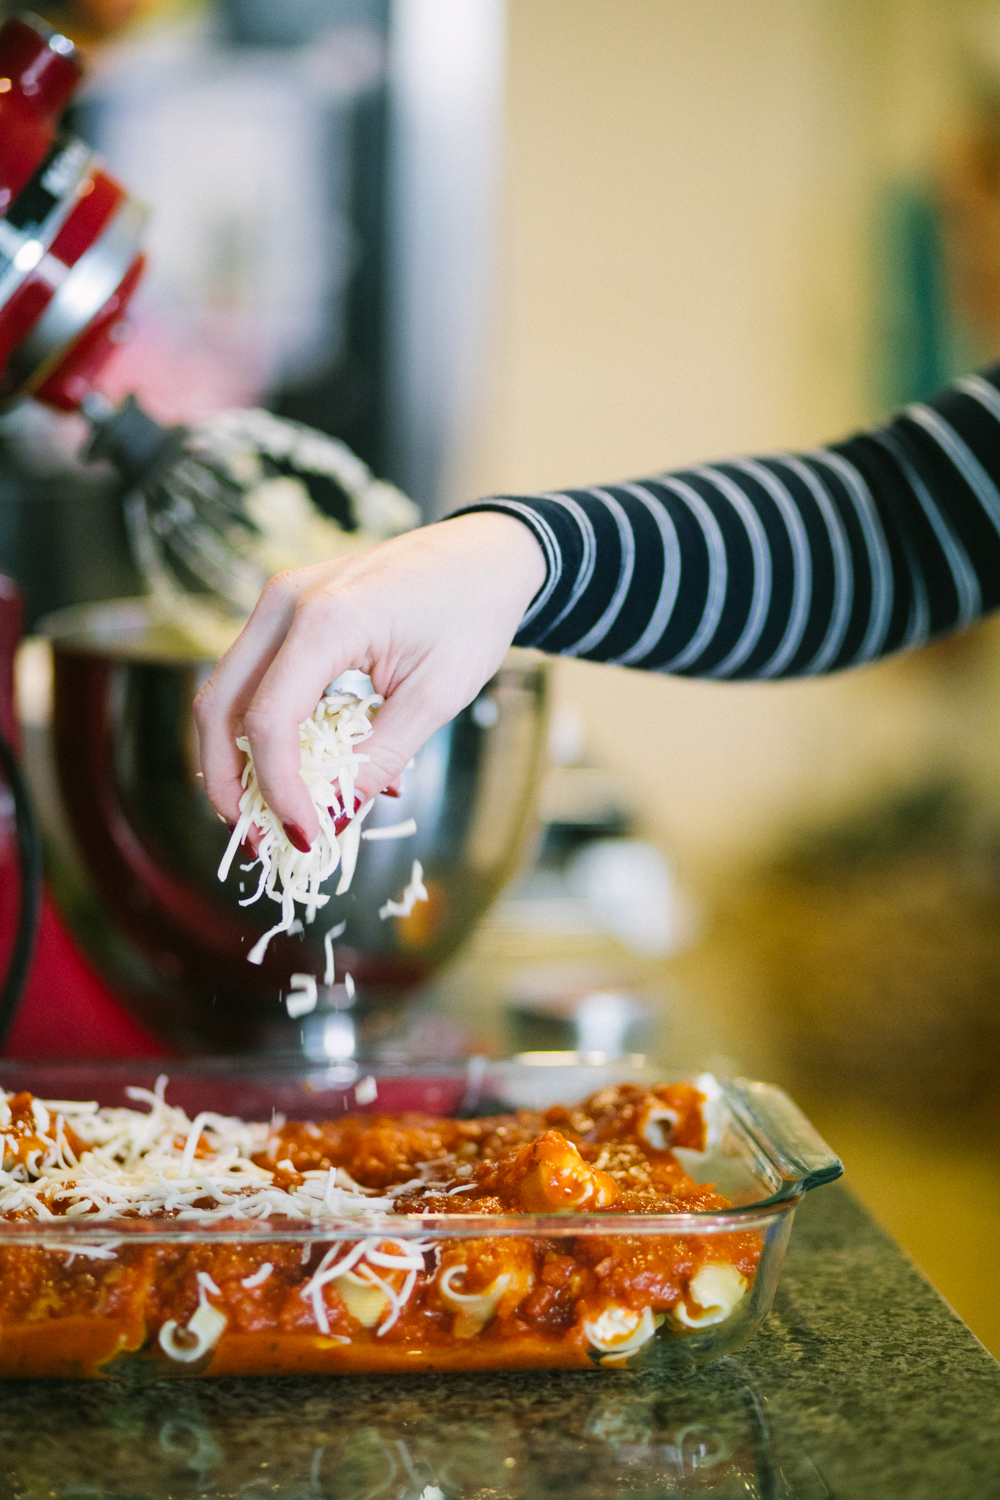 Best stuffed shells recipe featured by top US lifestyle blog, Life of a Sister